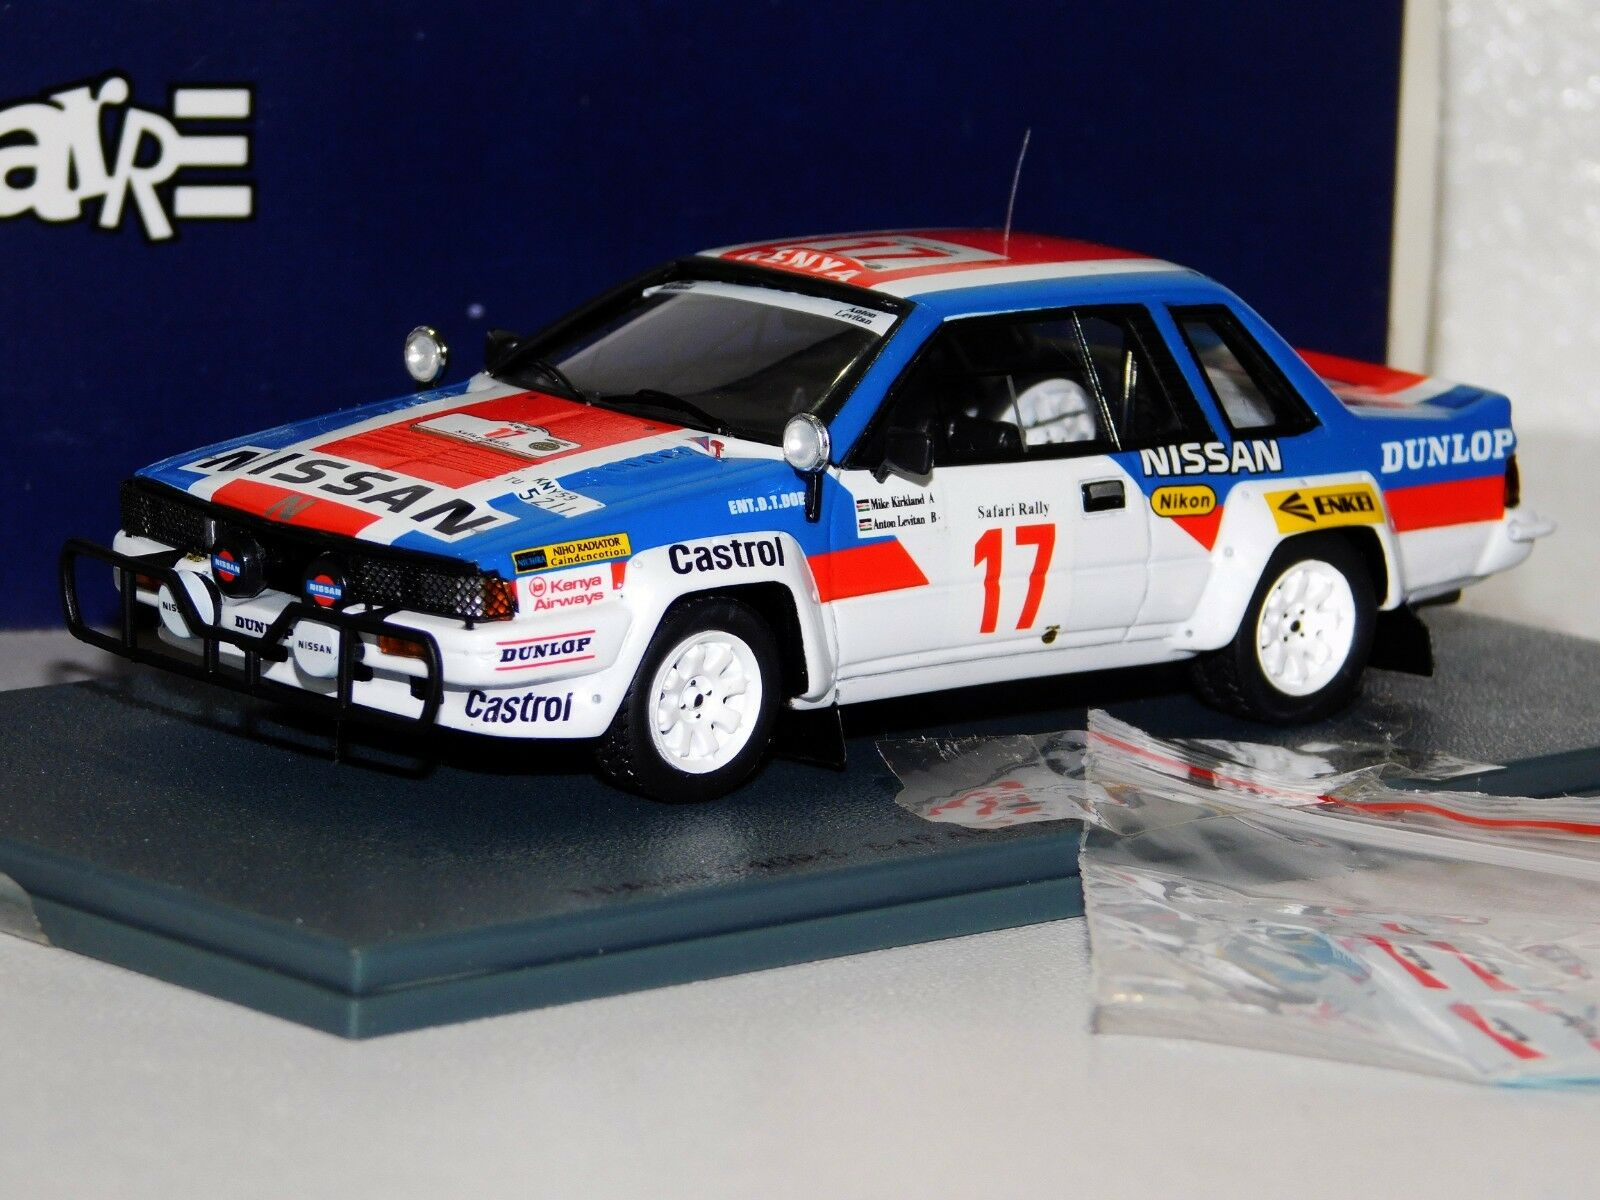 NISSAN 240RS SAFARI RALLY 1985 BIZARRE BZ222 (WITH DECALS) 1 43